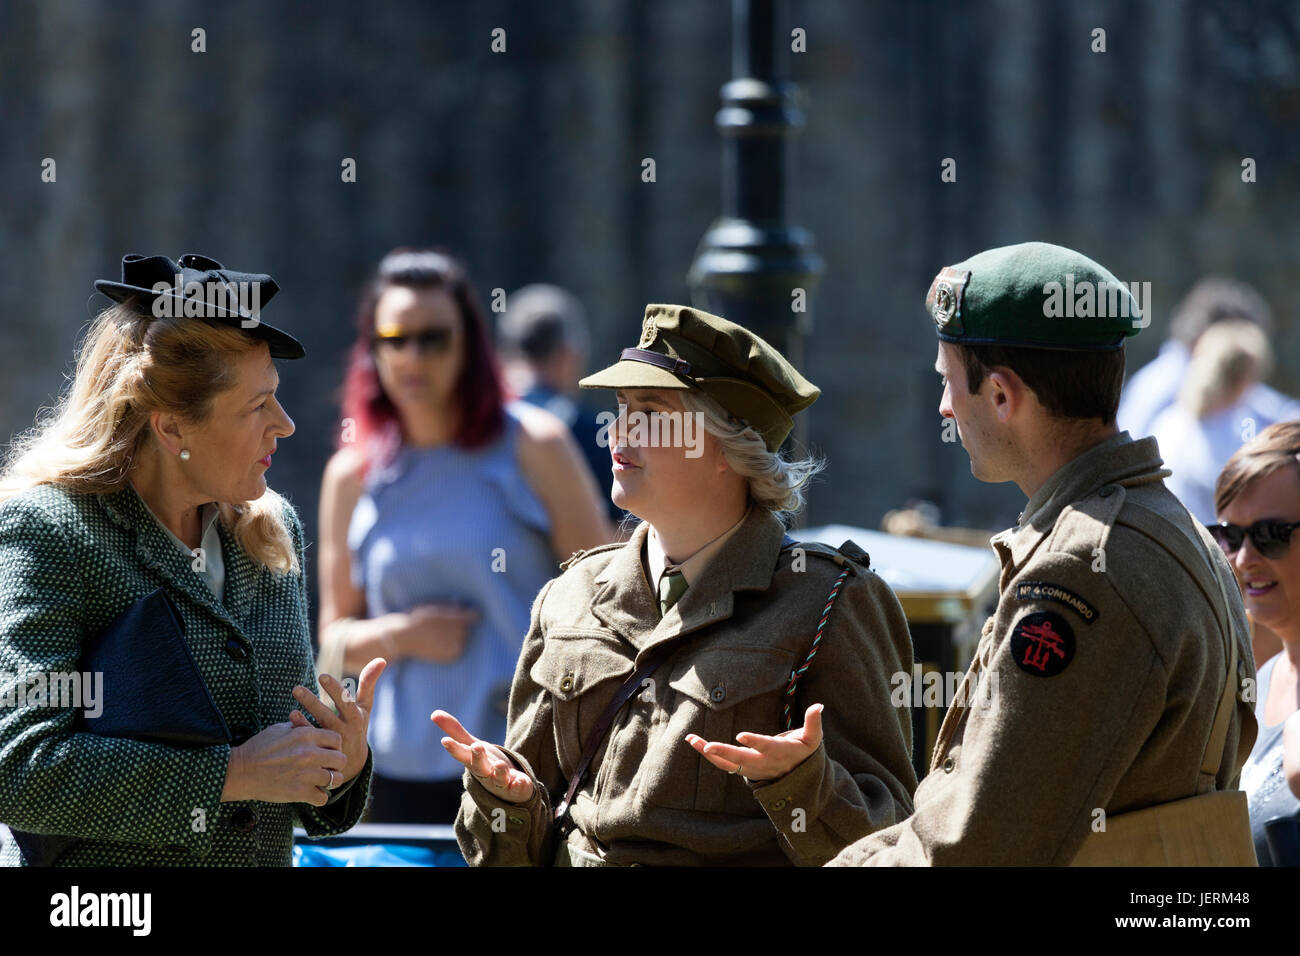 Three People Chatting While Wearing 1940's Style Clothing and Military Uniforms During the 2017 Barnard Castle - Stock Image